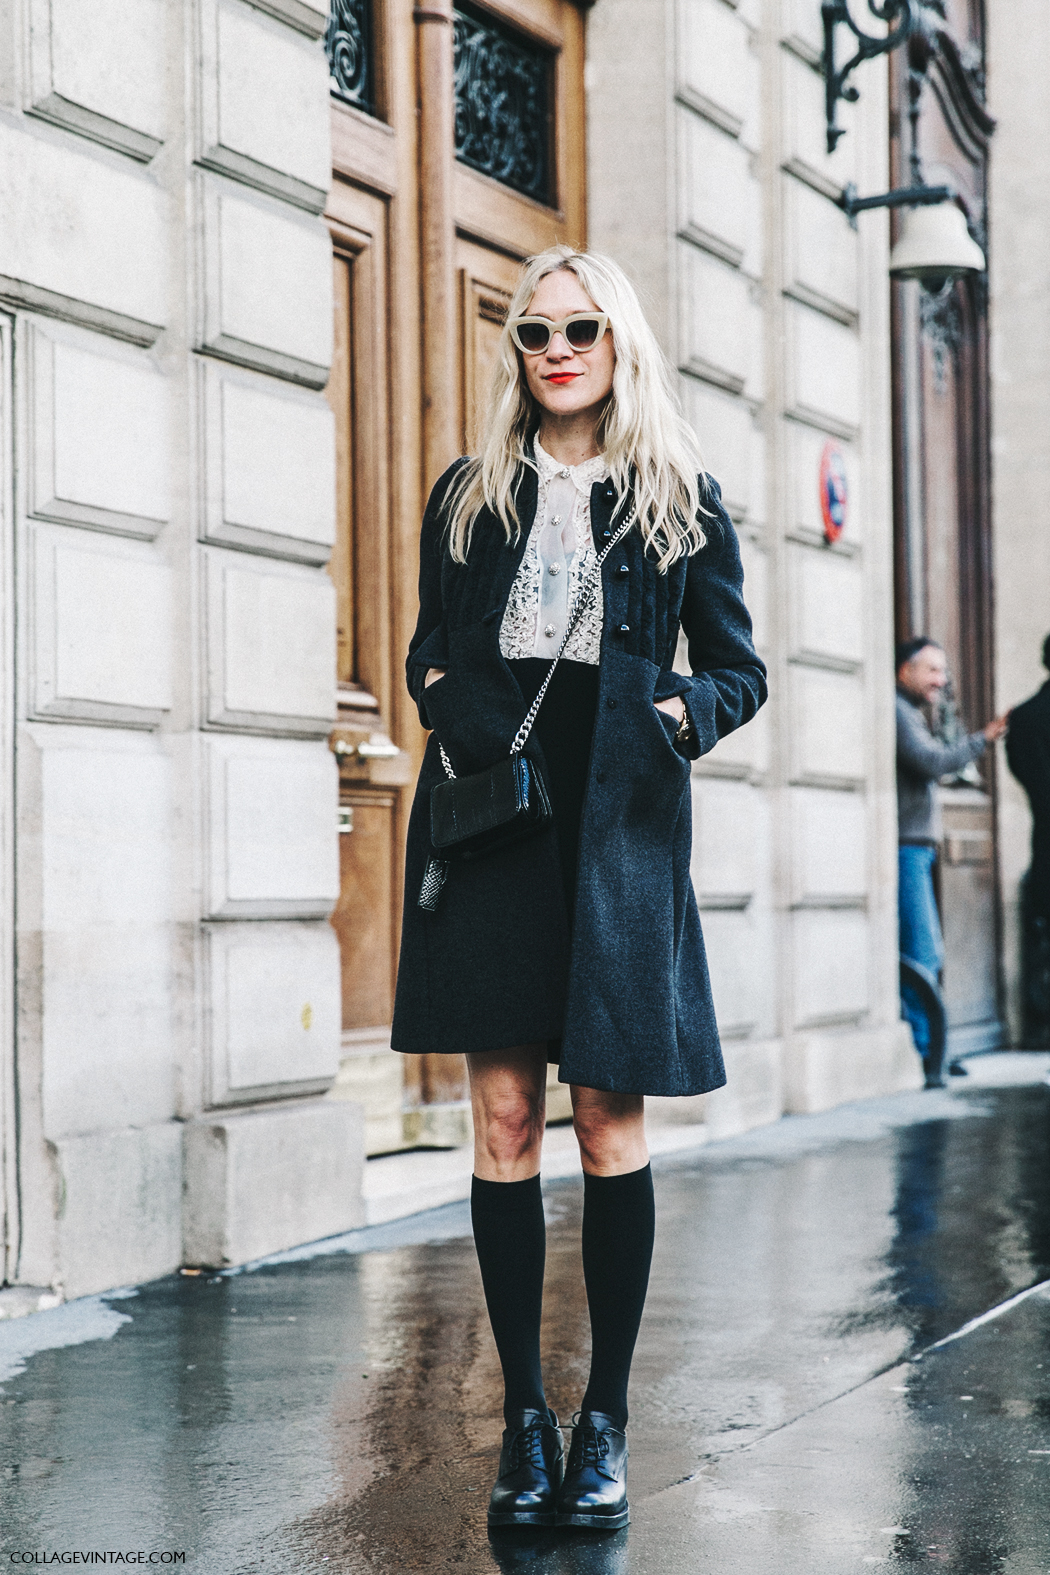 PFW-Paris_Fashion_Week_Fall_2016-Street_Style-Collage_Vintage-Miu_Miu-Chloe_Sevigny-Socks-13